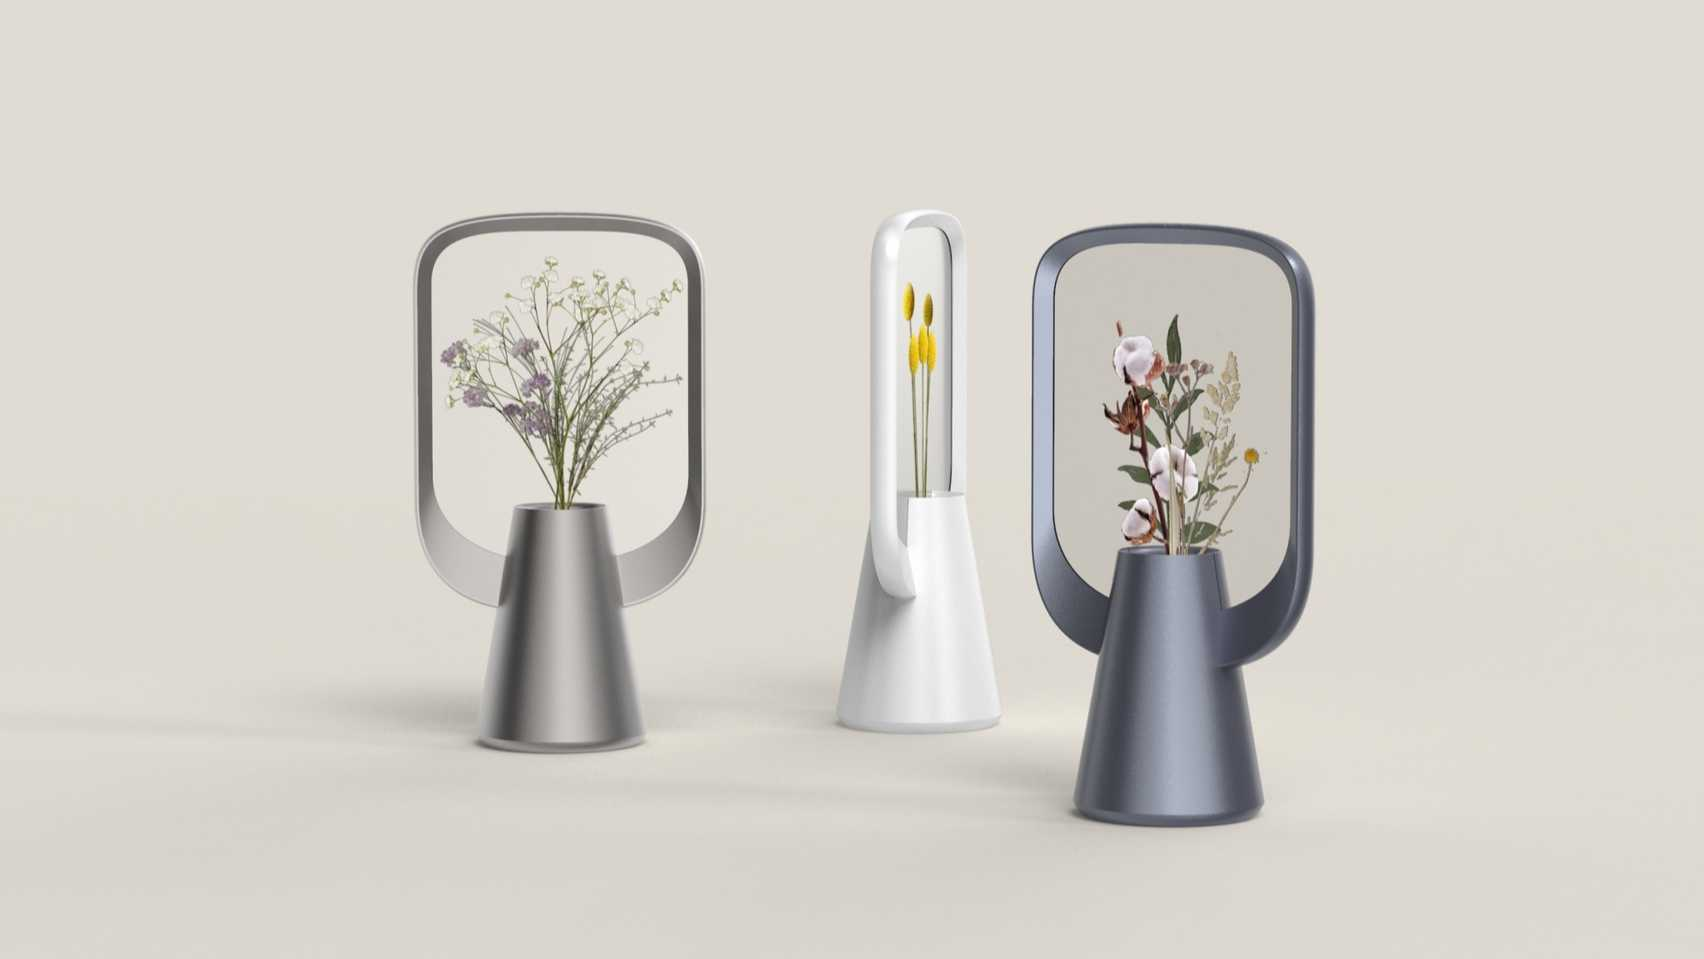 Lily by Sinan Anayurt virtual plant on the Dezeen and LG Display OLED Go competition shortlist